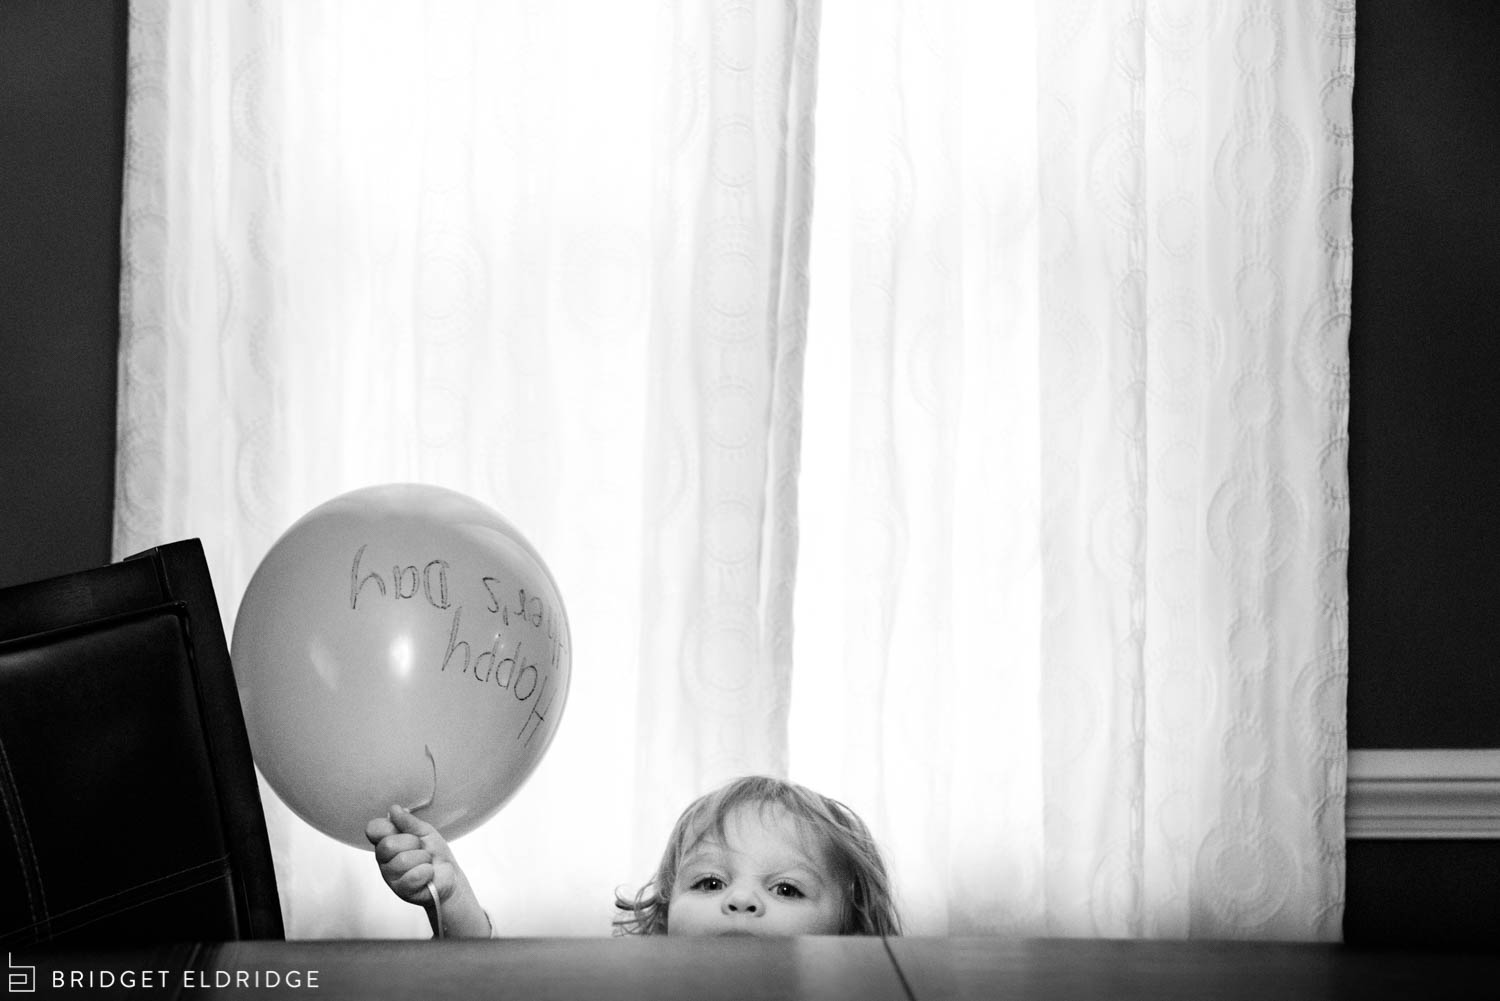 toddler brings the happy mother's day balloon to the breakfast table